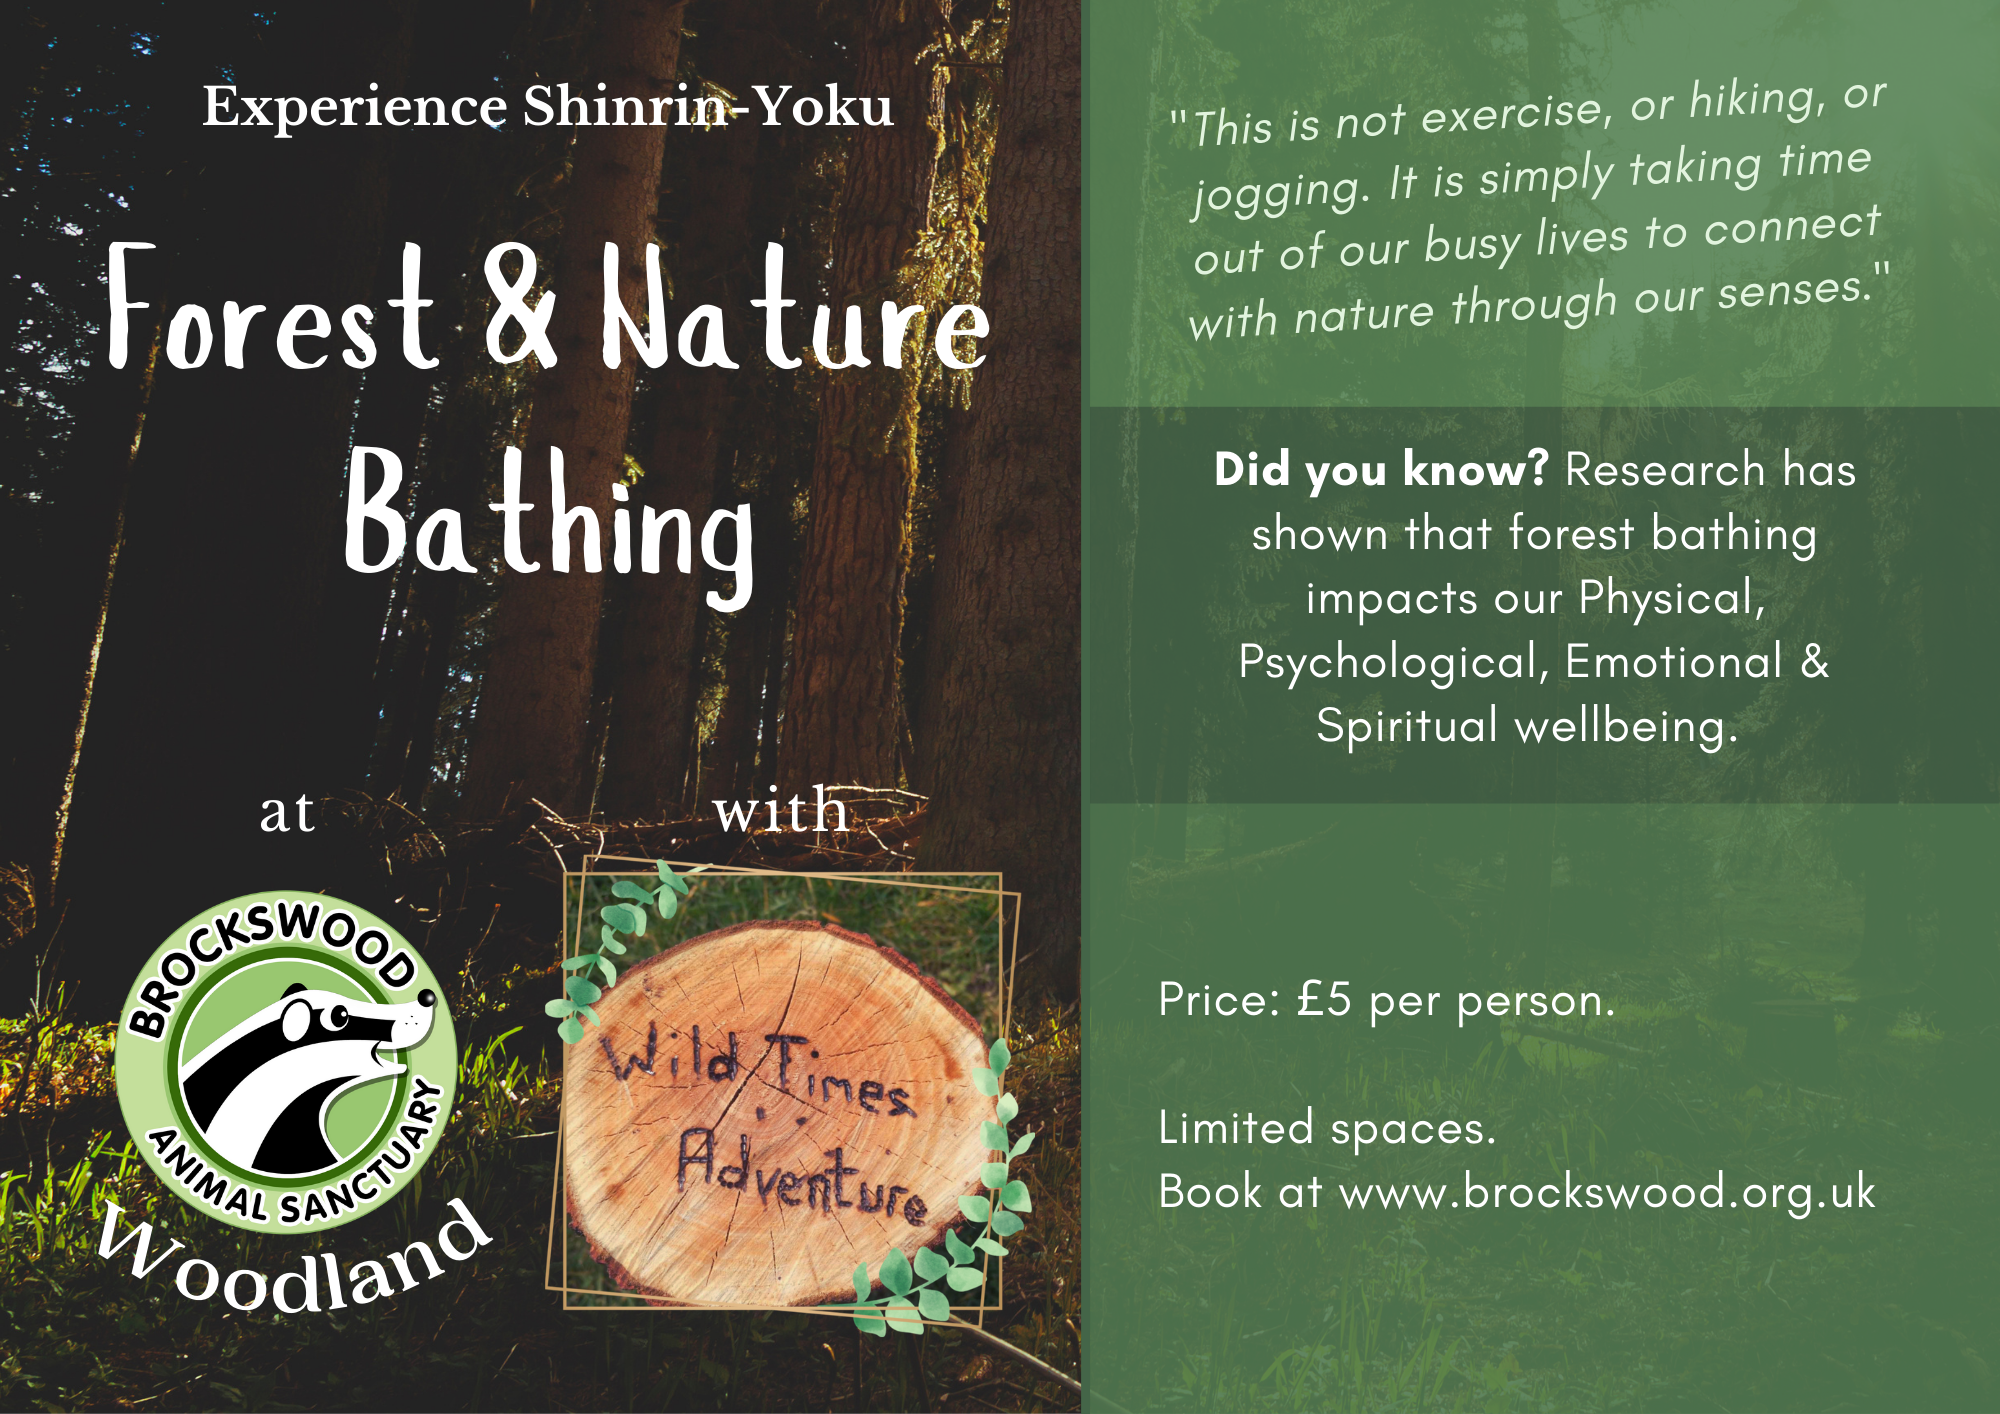 Forest & Nature Bathing